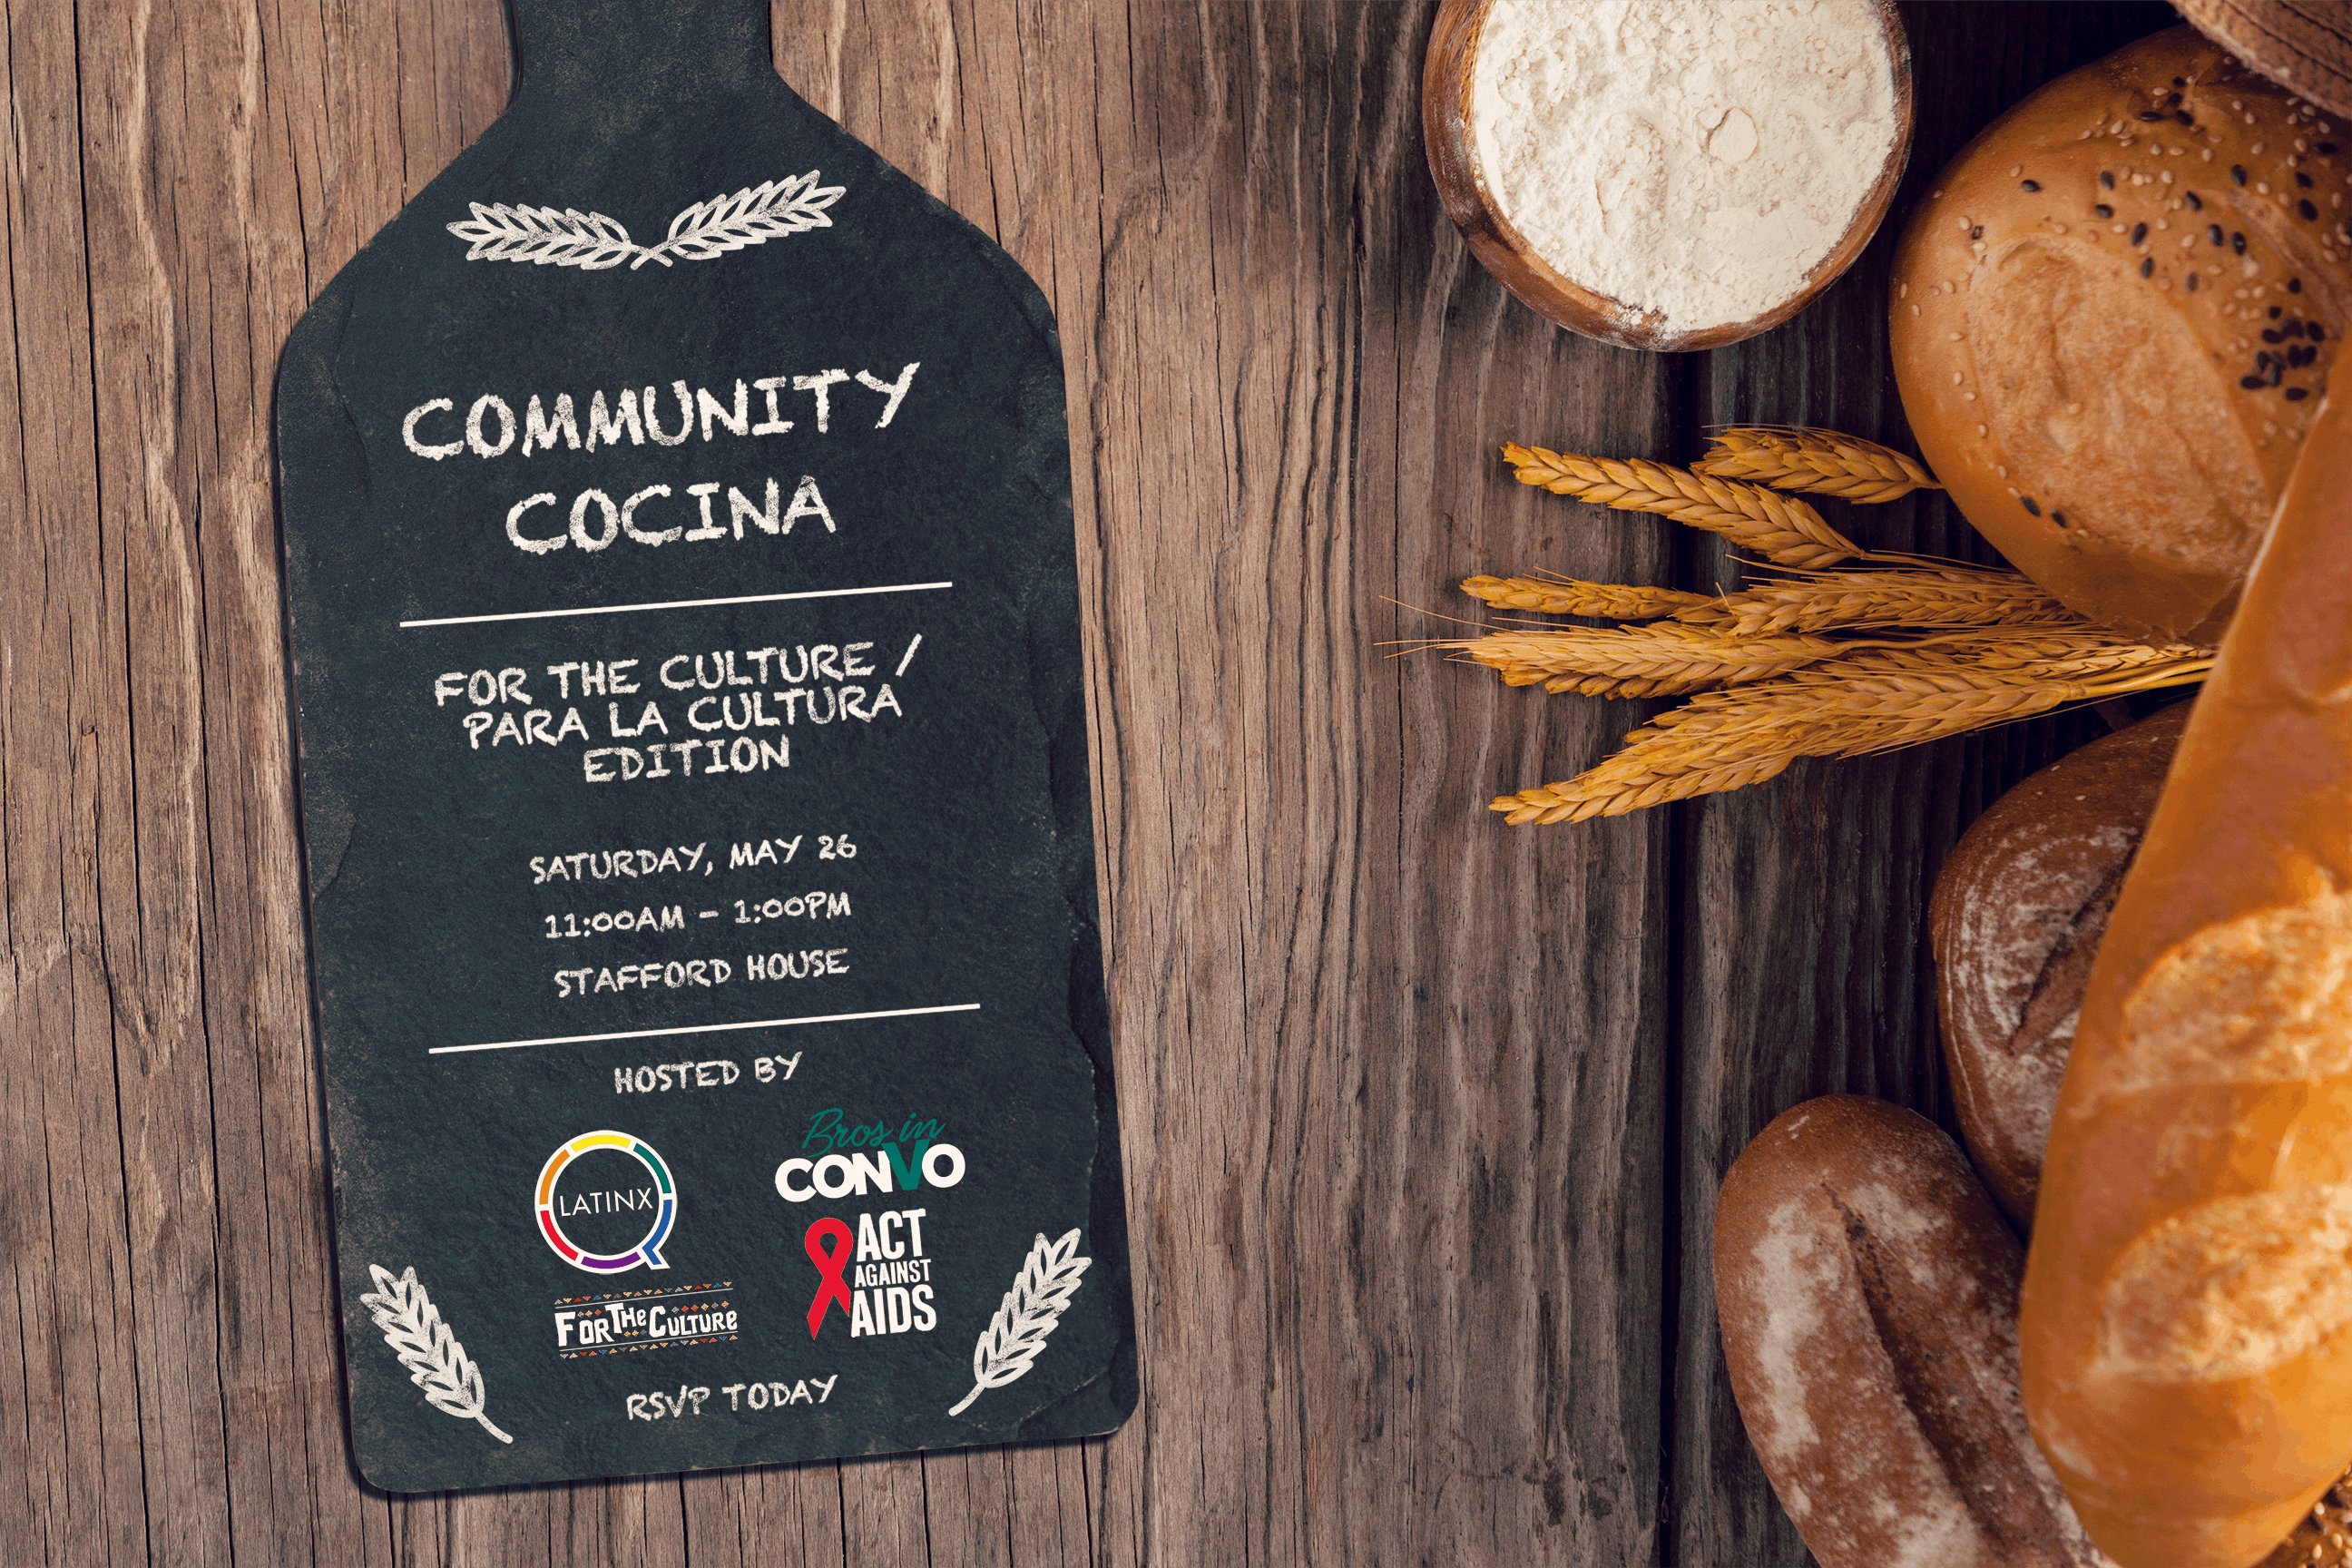 Community Cocina For the Culture  Para la Cultura Edition